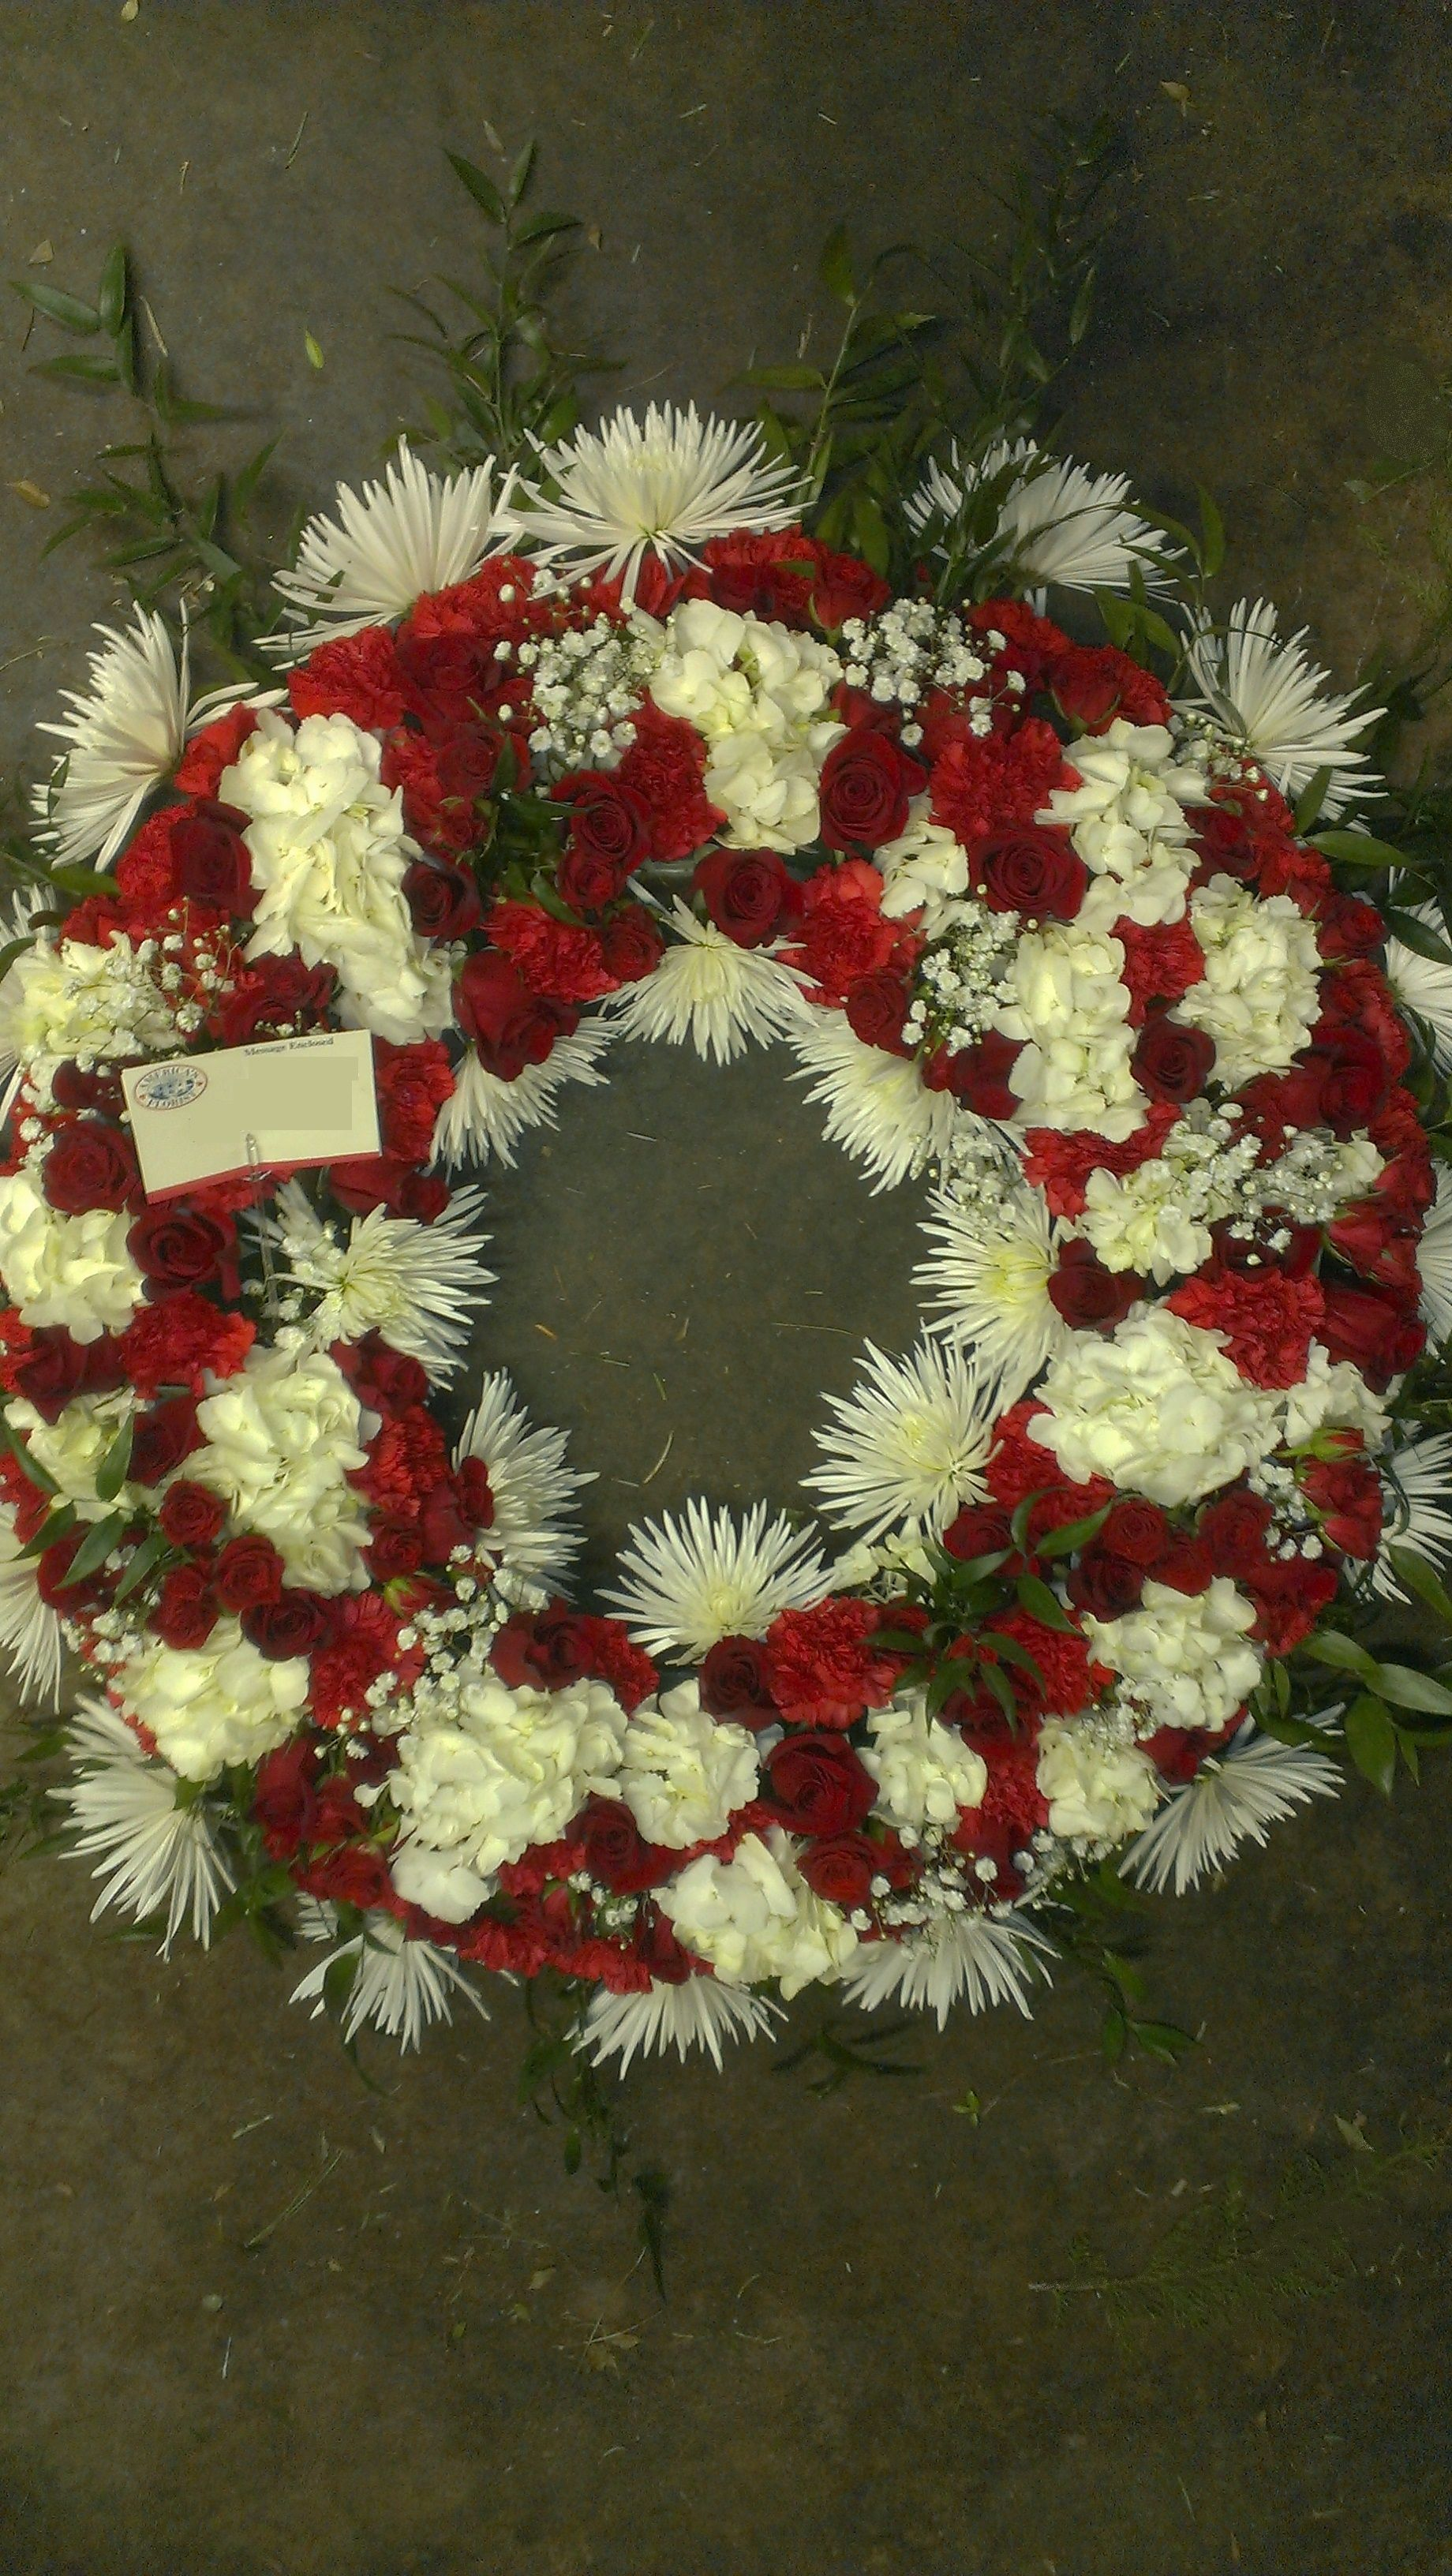 Local funeral wreath red and white in color